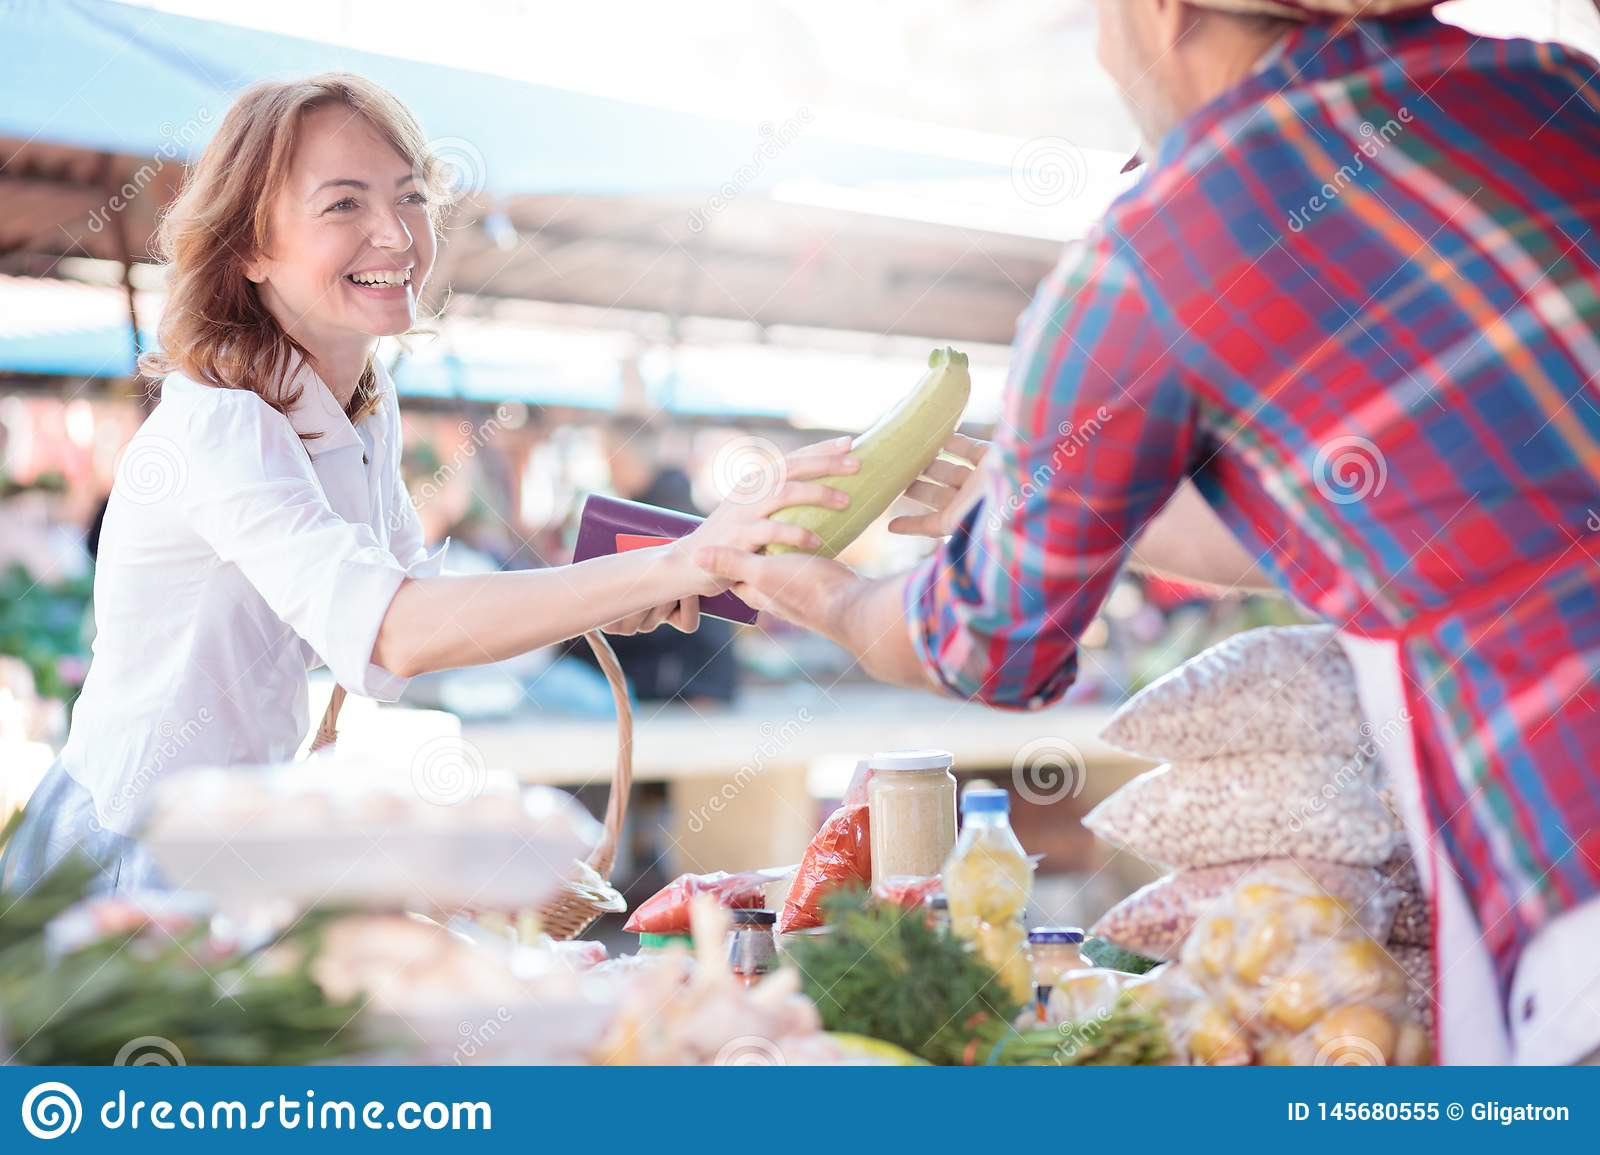 Happy smiling mid adult woman shopping for fresh organic vegetables in a marketplace, carrying a basket